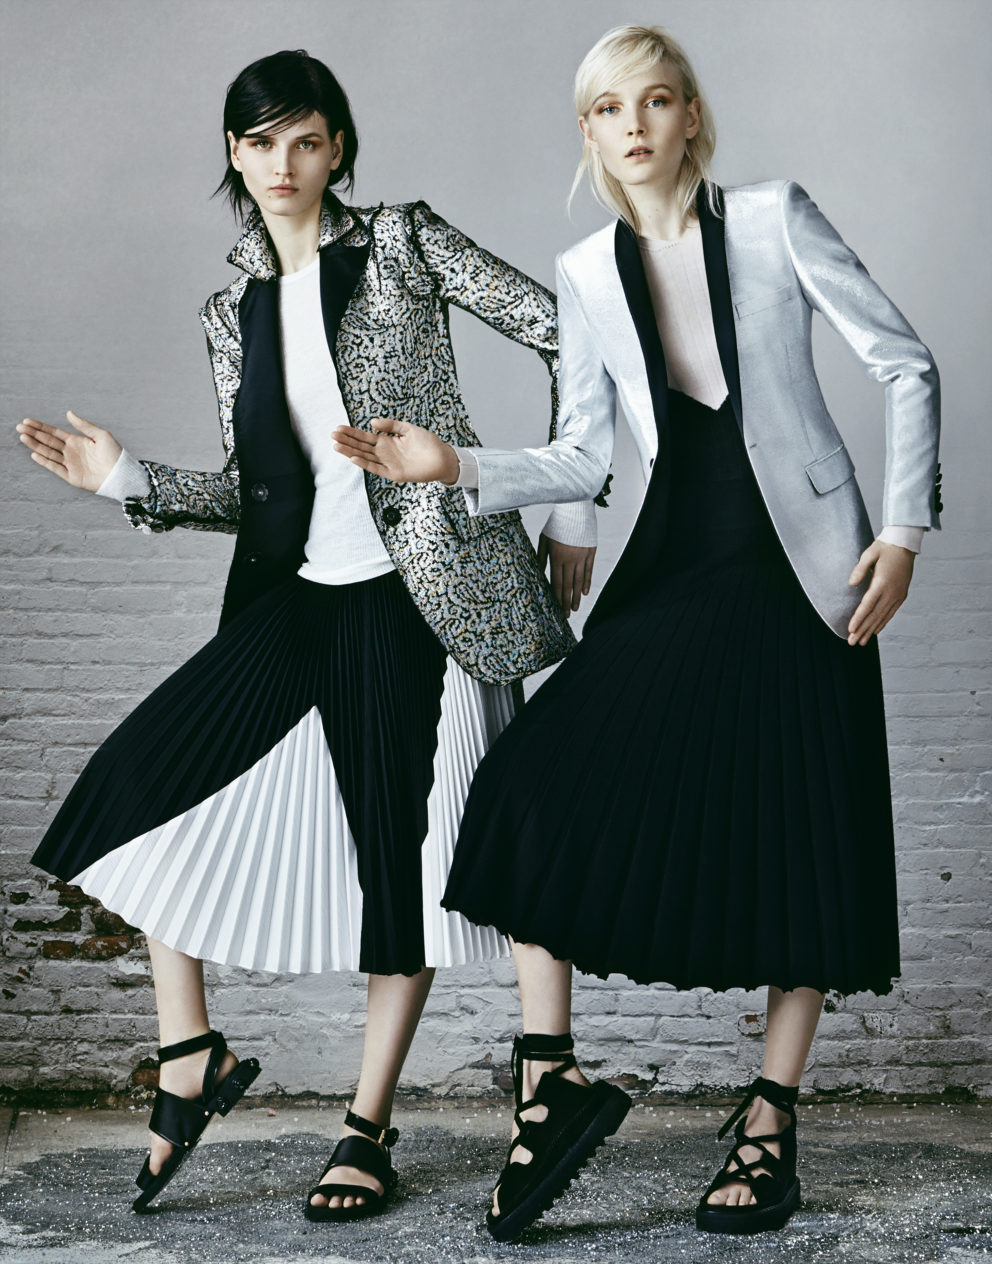 140129 Vogue Sequin Twins Christian Hogstedt 05 1